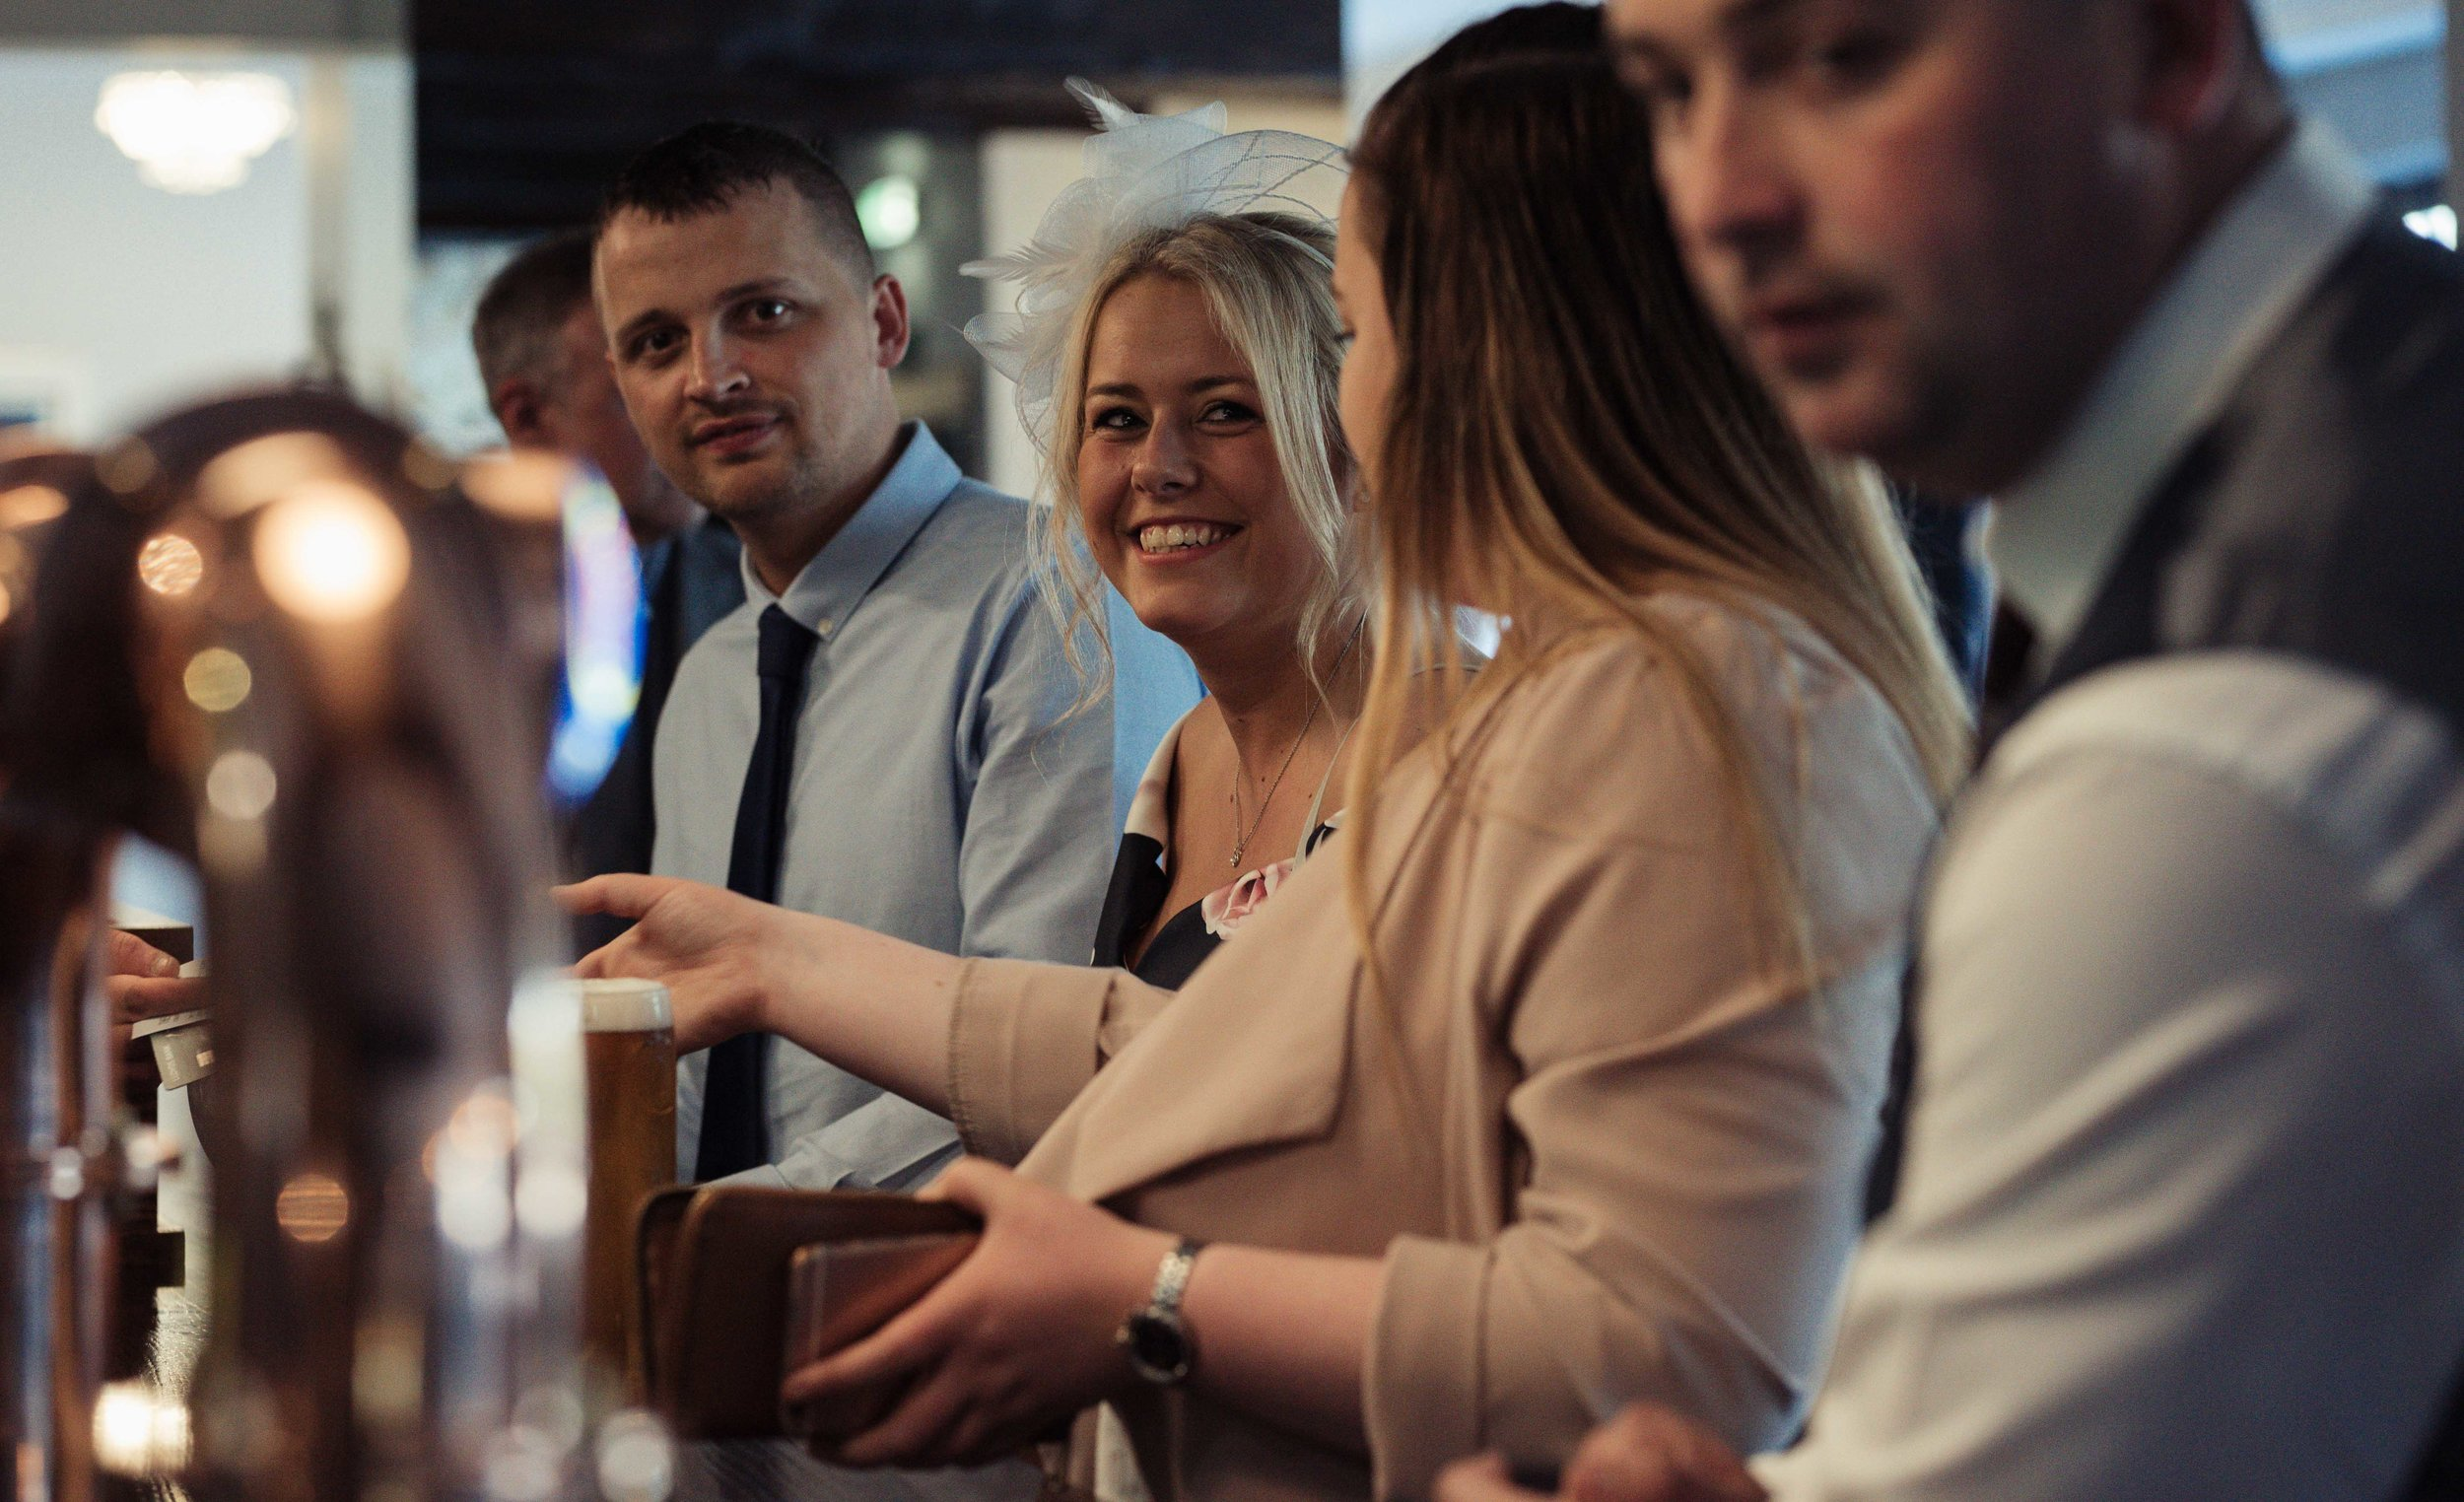 Guests stand at the bar waiting to be served, but share a smile for the camera